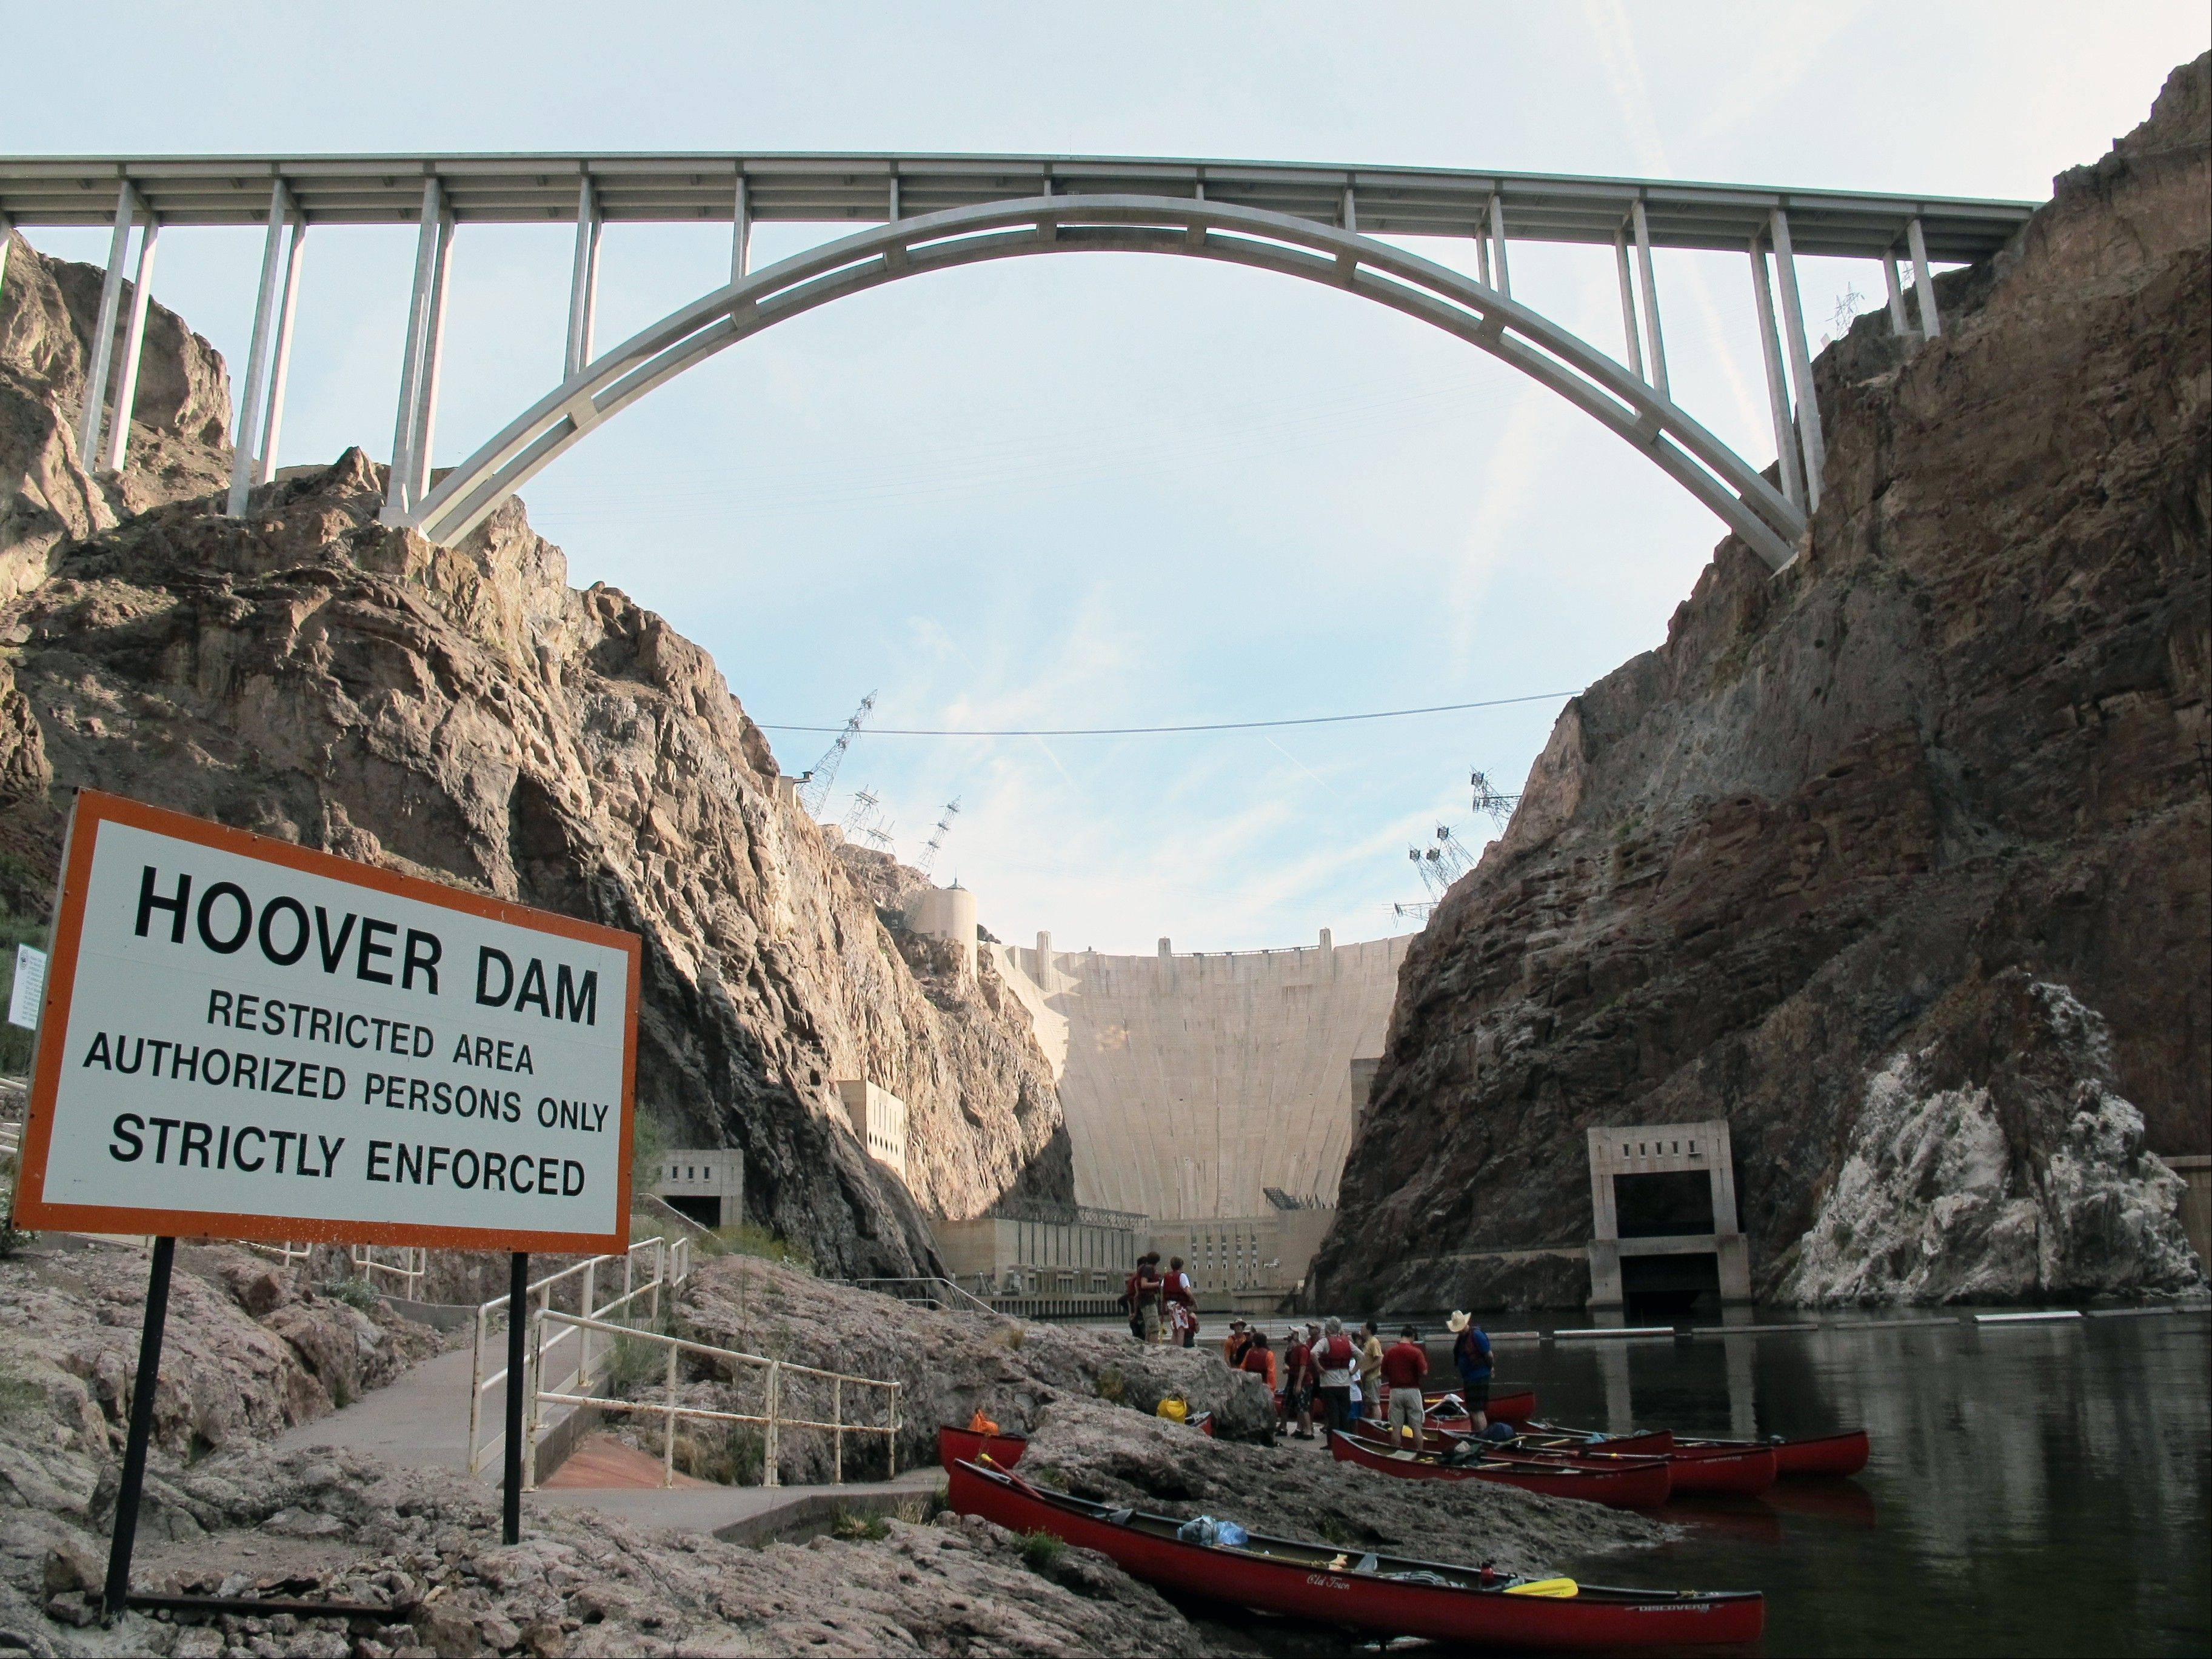 The put-in area at the base of the Hoover Dam, outside of Boulder City, Nev., for trips on the Colorado River by kayak, canoe and raft.